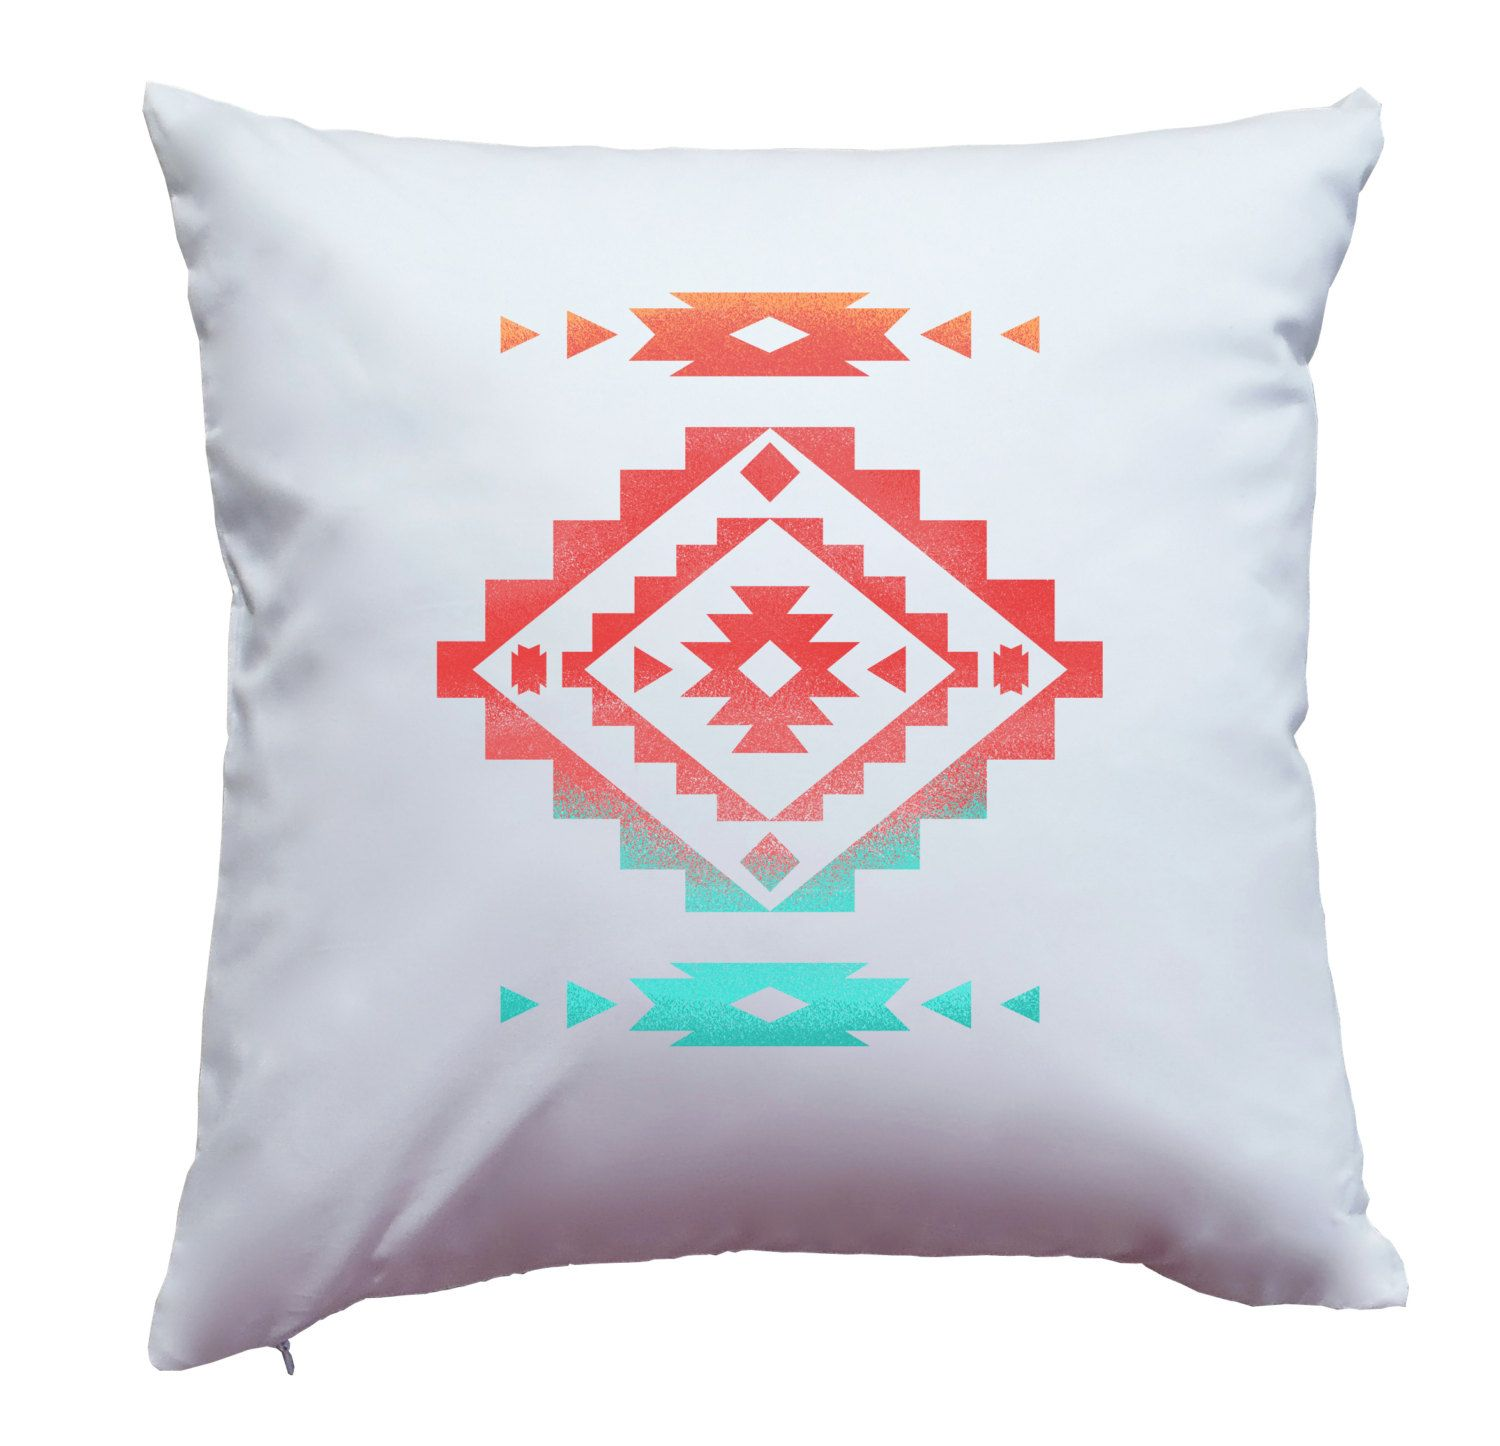 Trendy chic bright colorful cheery native american indian southwest